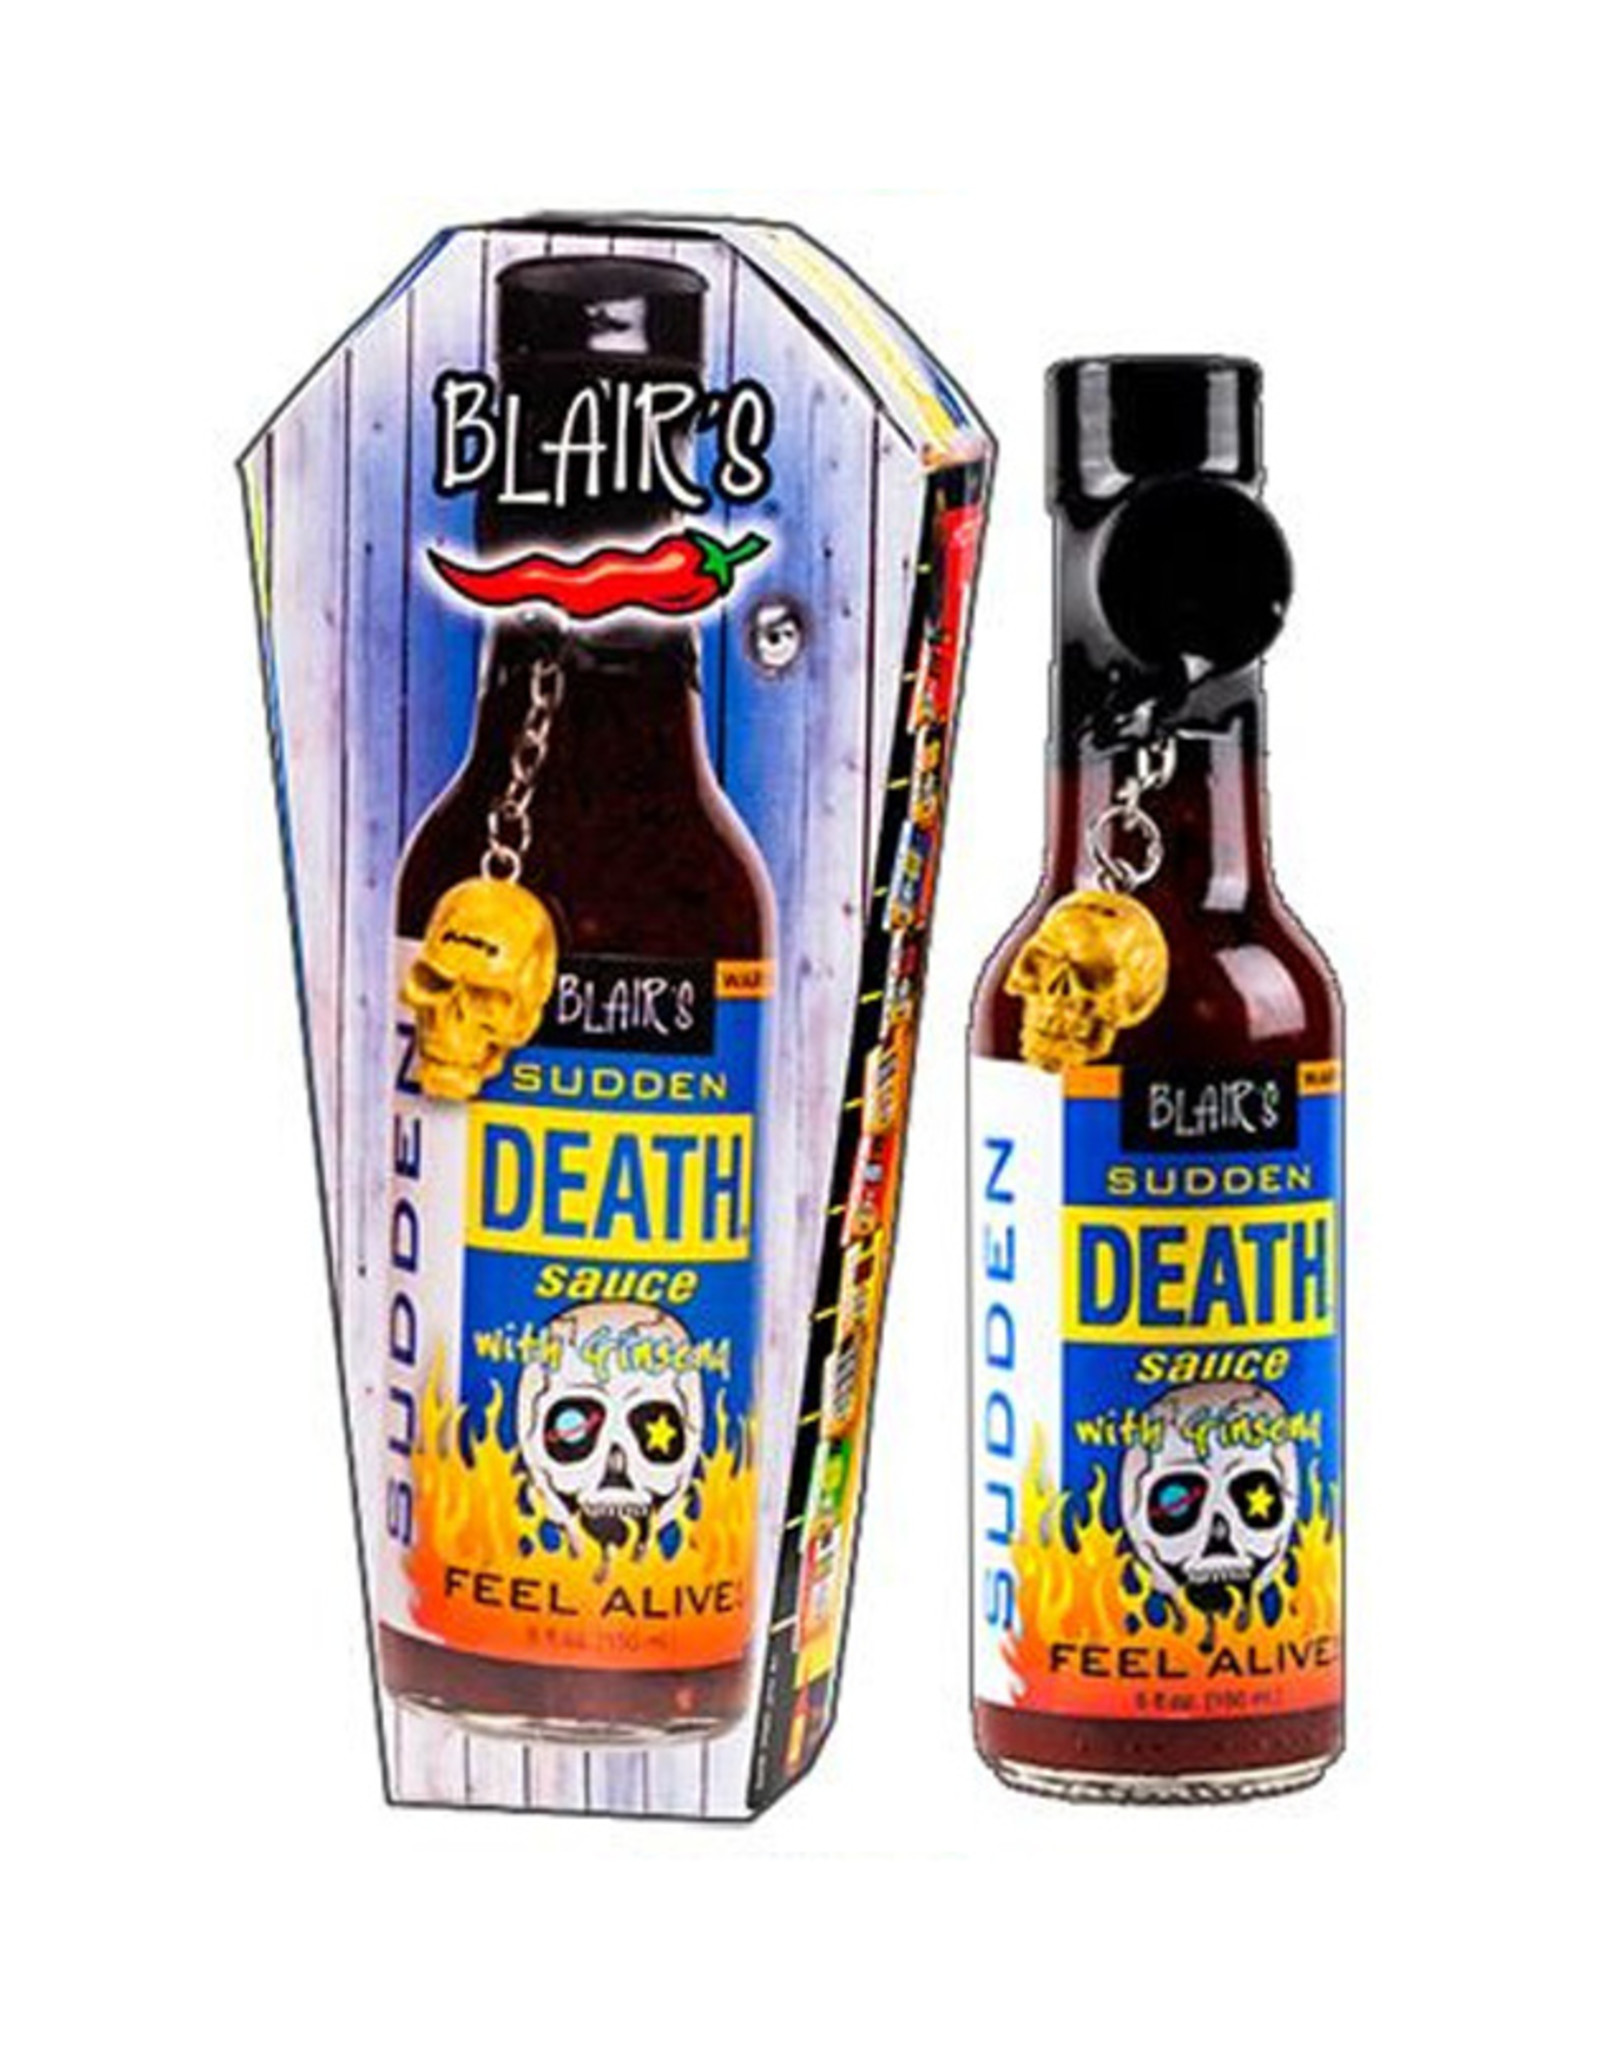 Blair's Sudden Death Sauce with Ginseng - Collector's Edition - 150ml